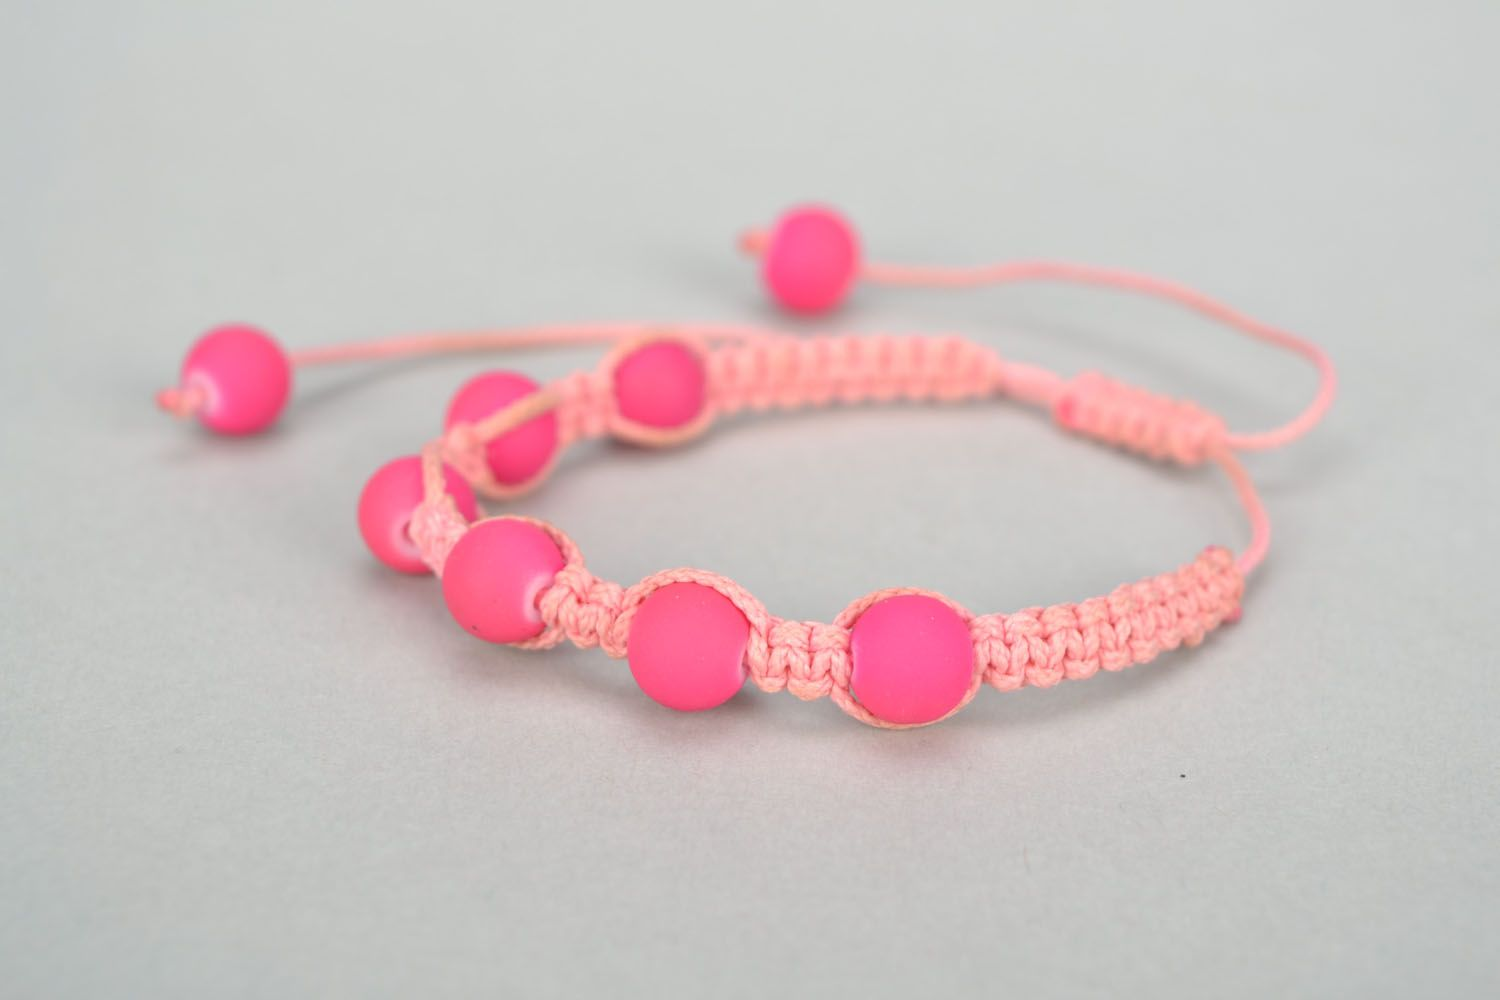 Woven bracelet with pink plastic beads photo 3